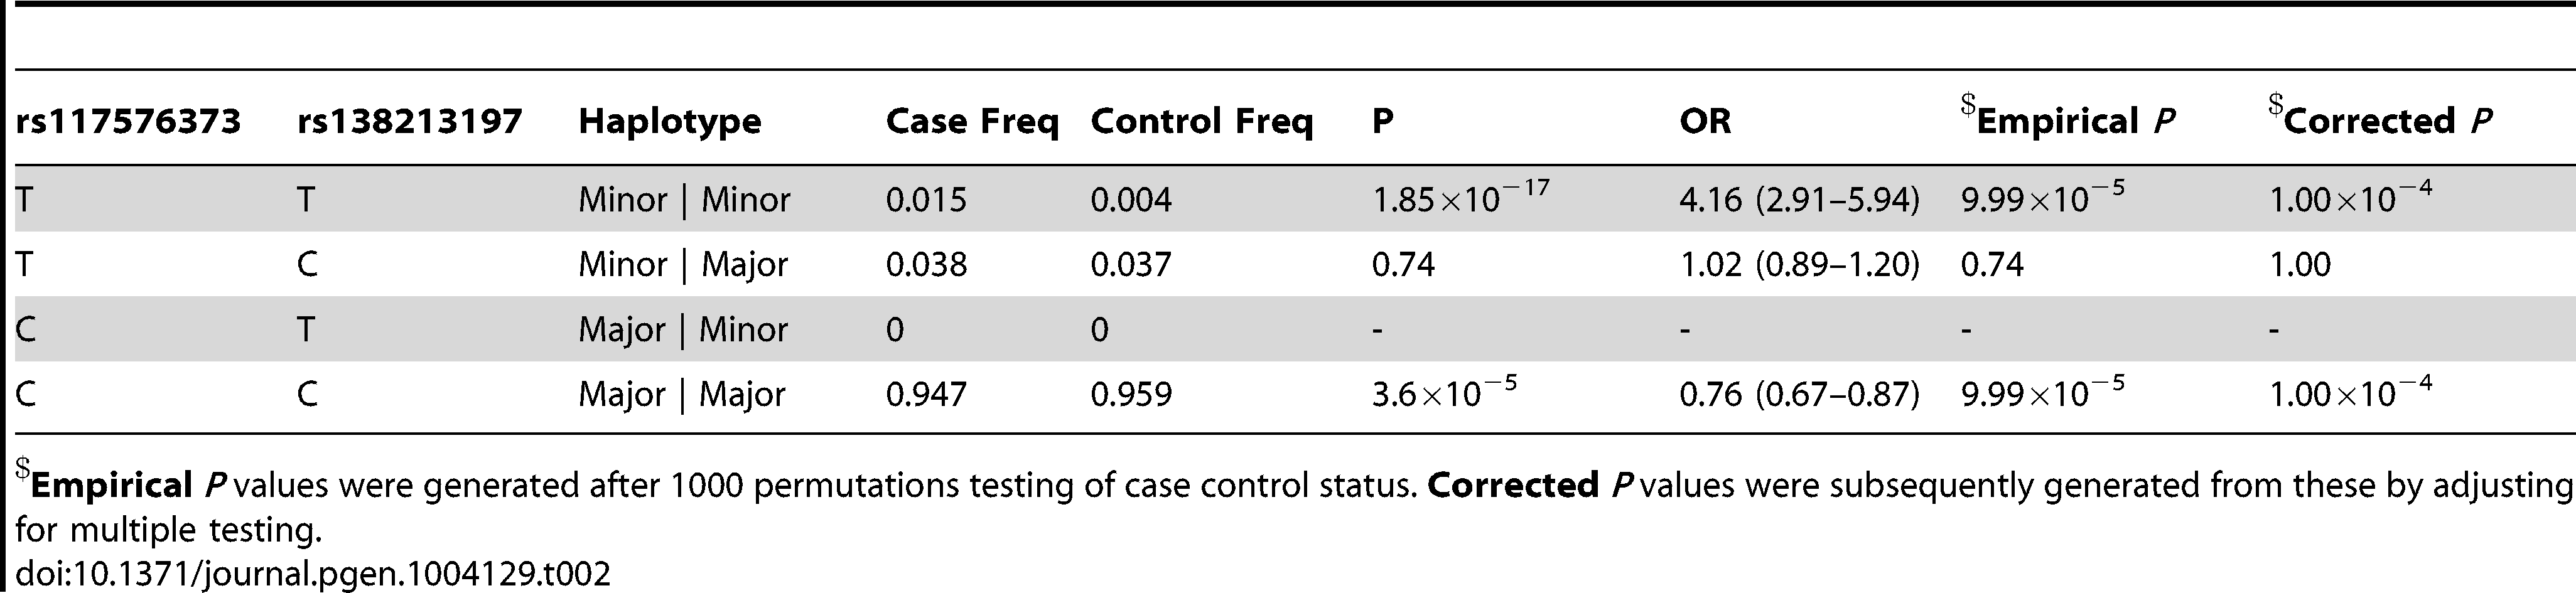 Haplotype analysis for rs117576373 and rs138213197 in the subset of 5500 PrCa cases and 4923 controls from the UK and Sweden for which both had been directly genotyped.